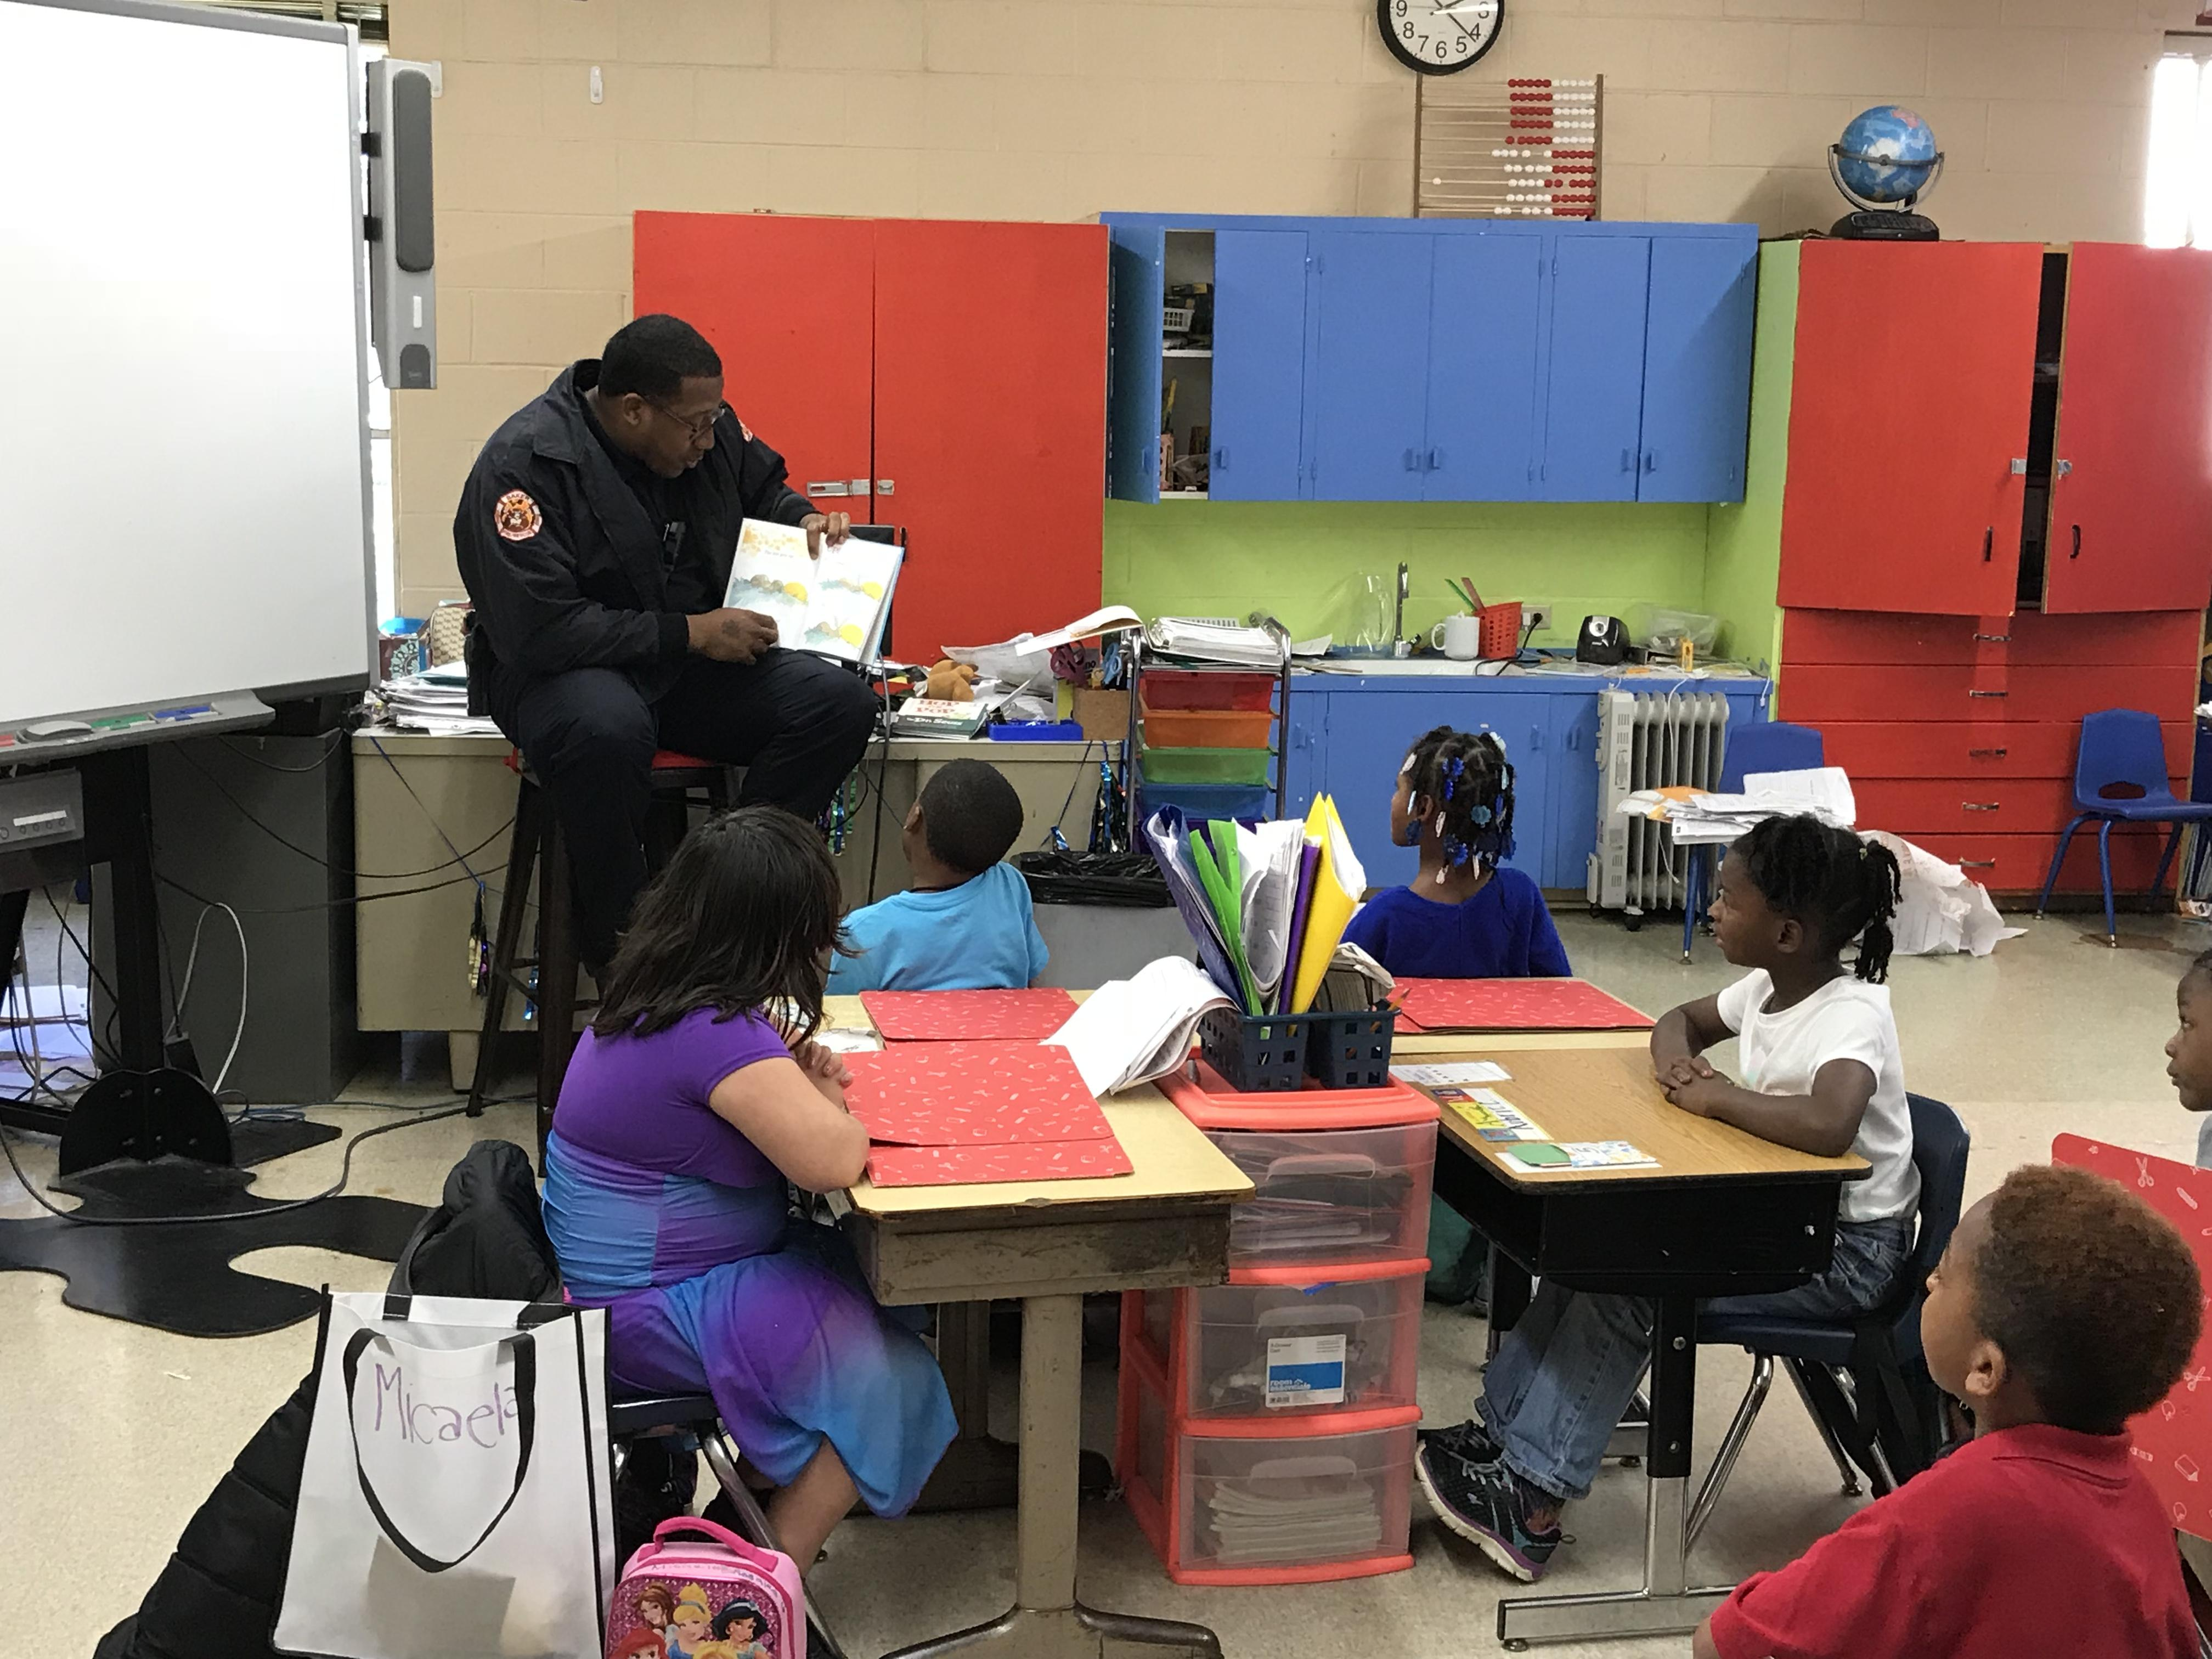 a photo of another member of the Baker Fire Department reading to a classroom of students at Park Ridge Academic Magnet School